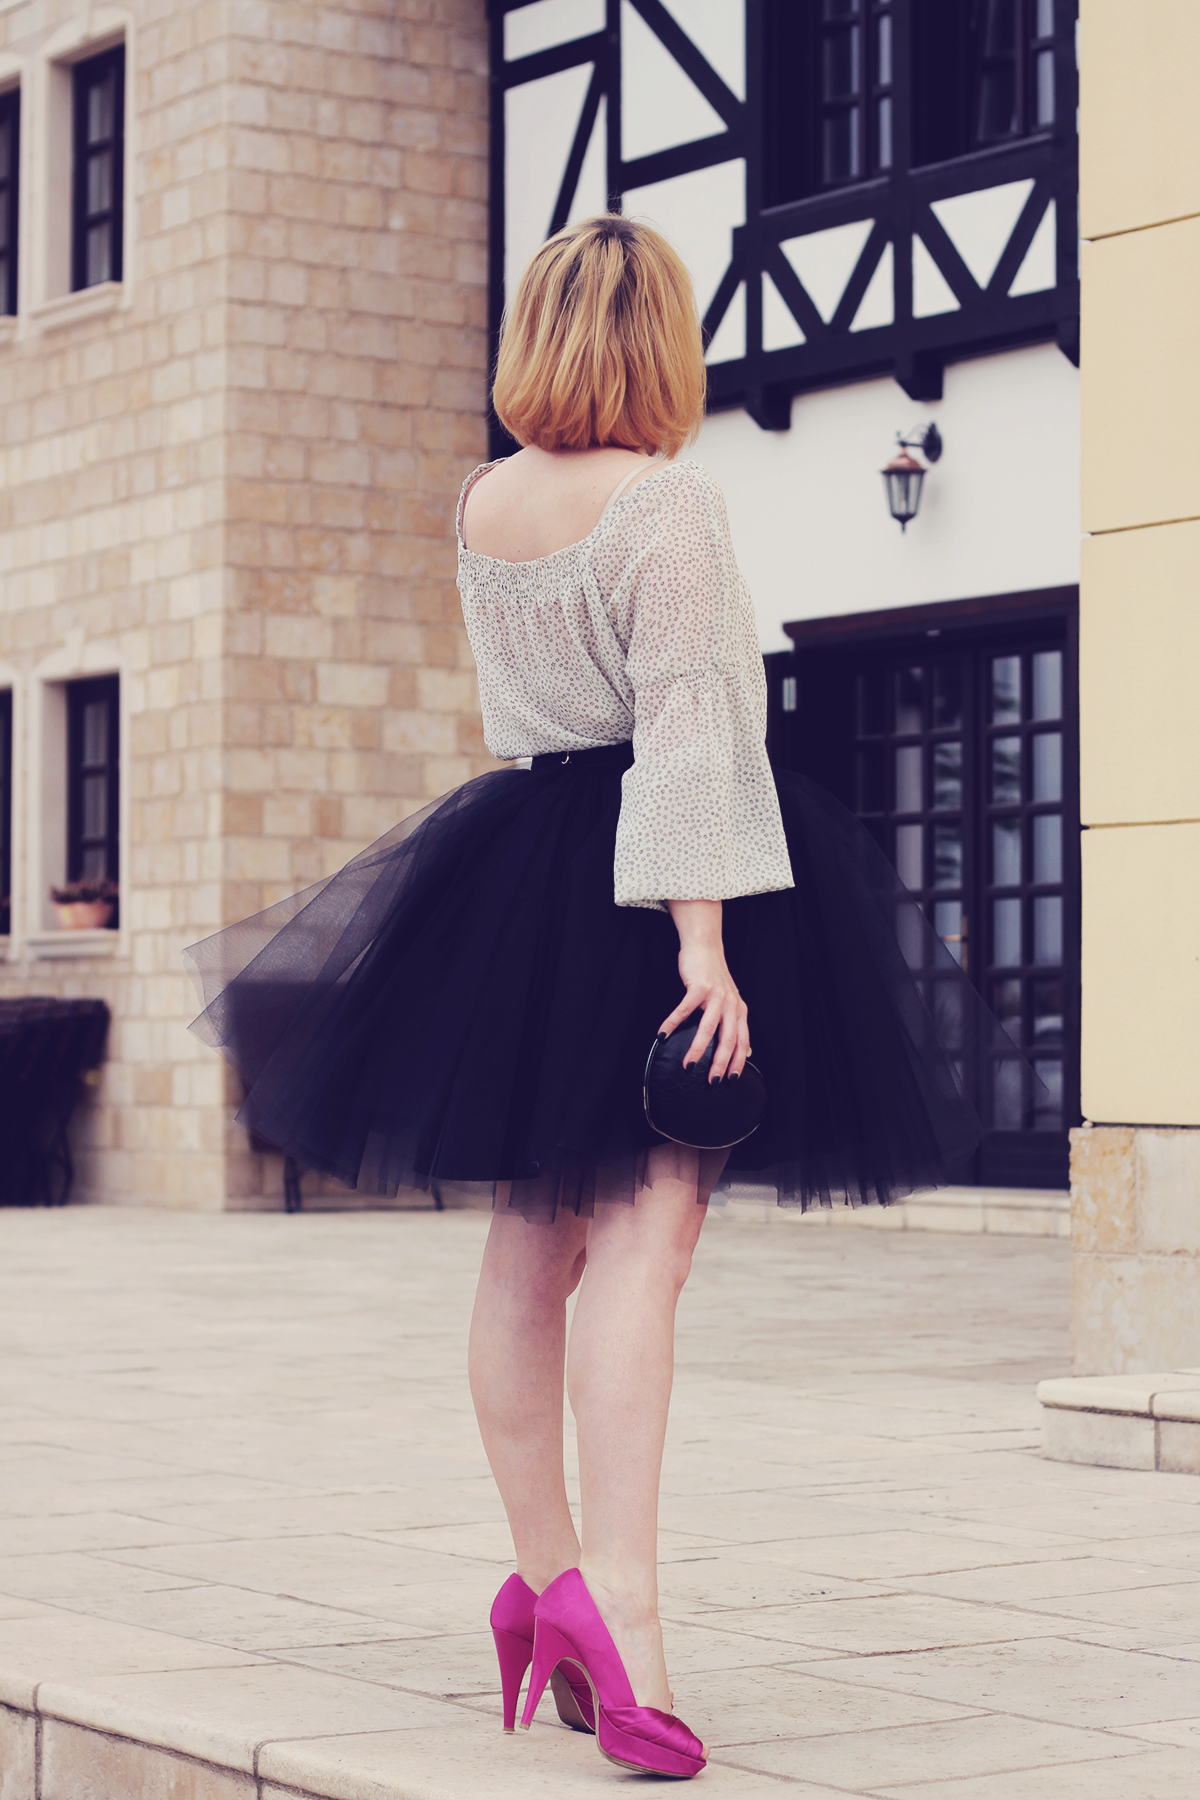 the tulle skirt and pink pumps_2